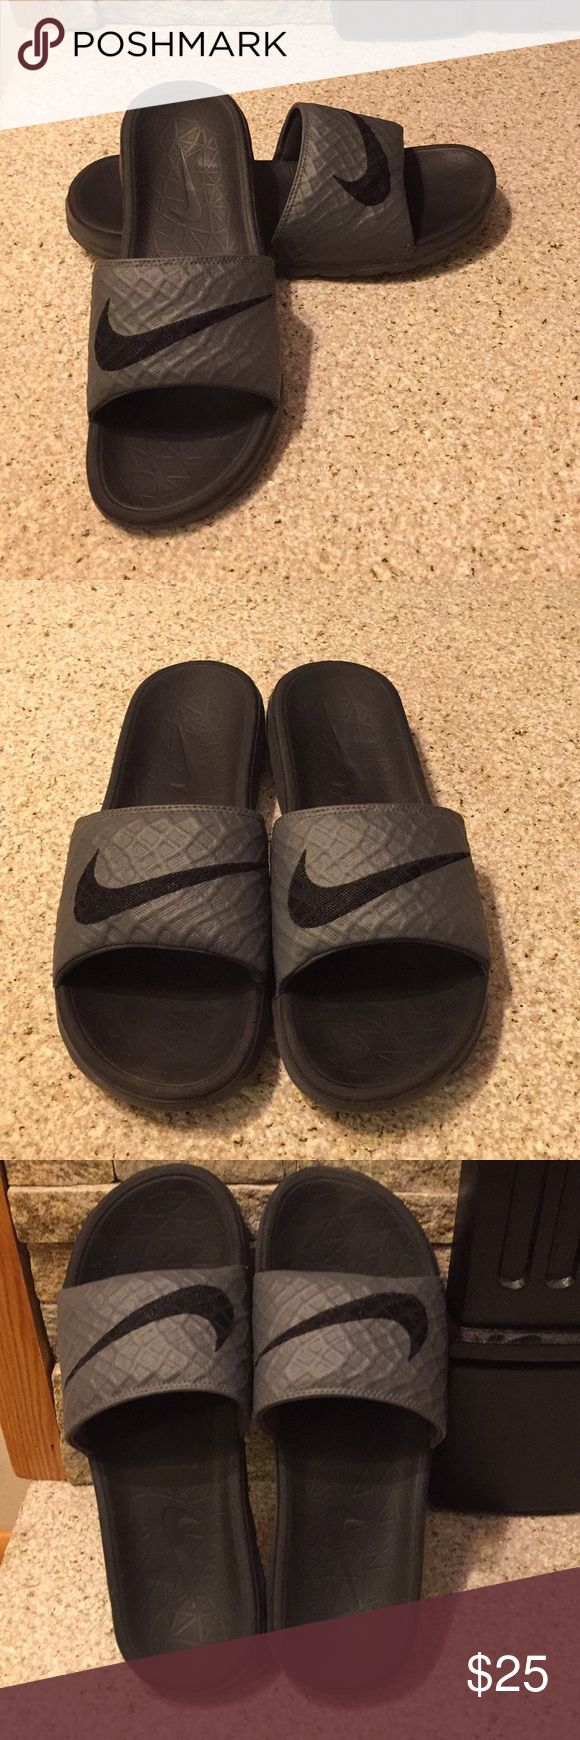 Men's Nike Slide Sandals Size 8 Grey/Black Soft and Comfortable! Nike Men's Slide Sandals in very good used condition (my son outgrew them before he really got to wear them). Perfect for the upcoming spring and summer. Nike Shoes Sandals & Flip-Flops